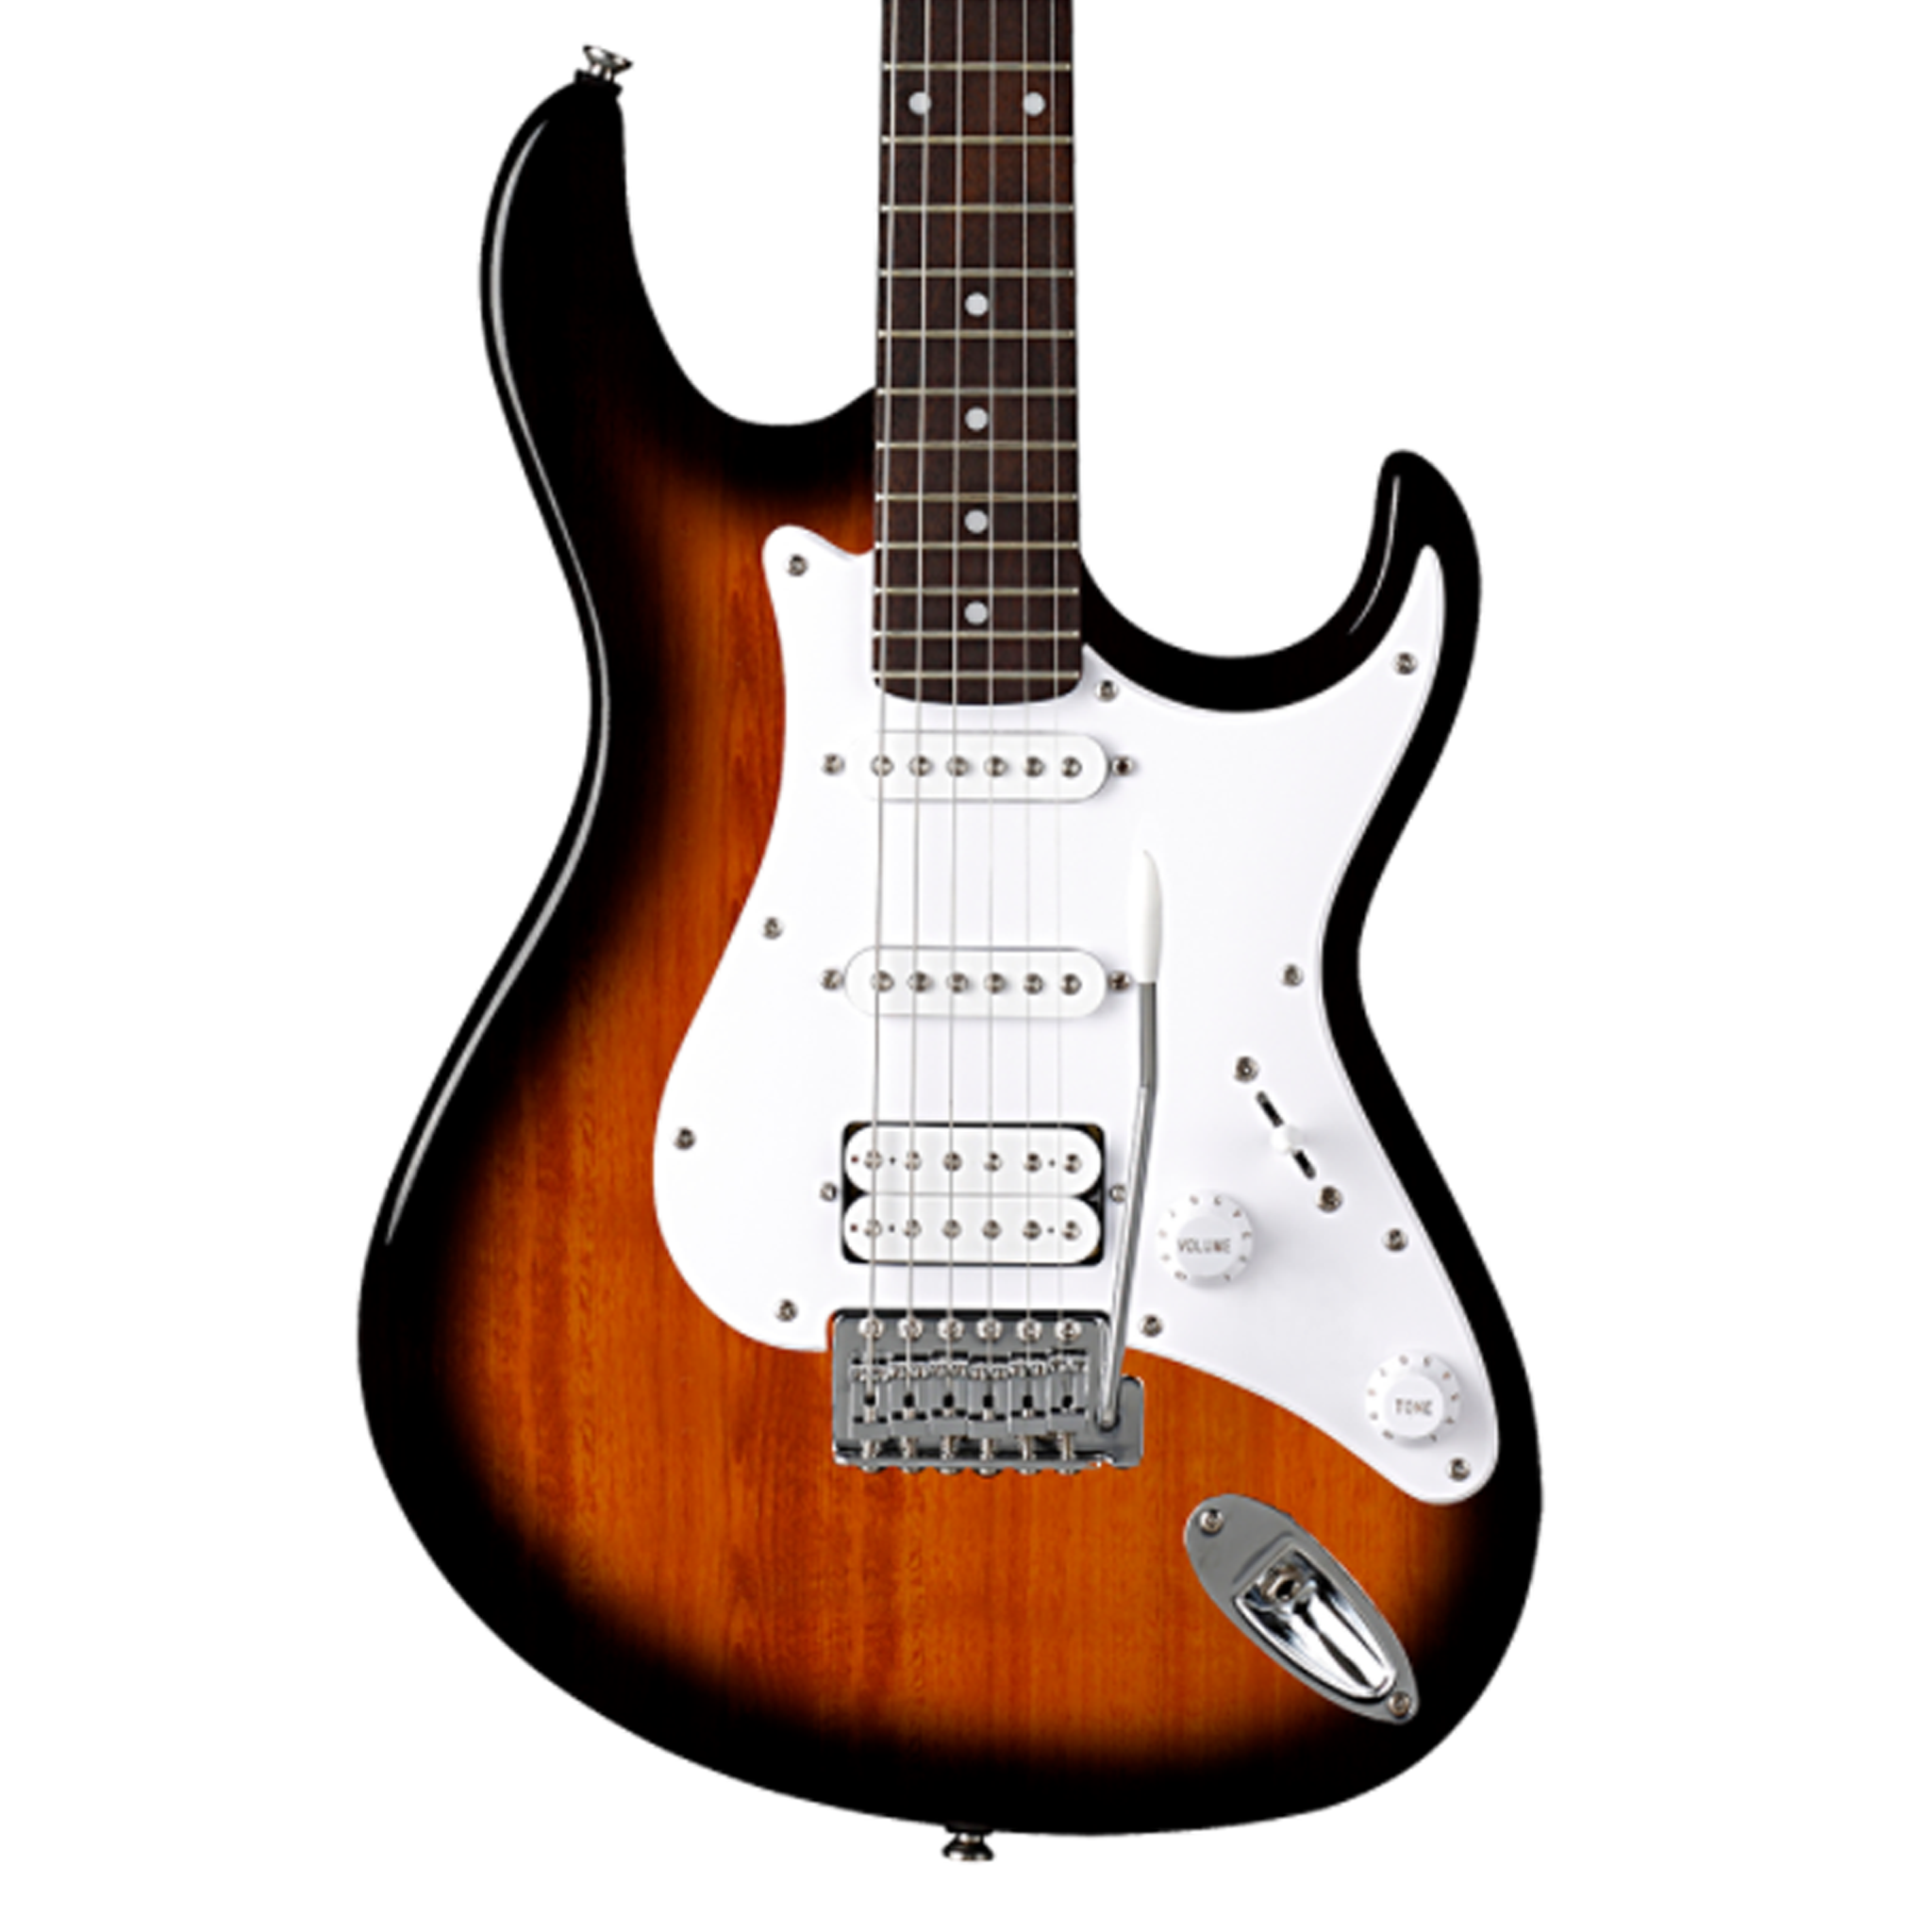 Cort G110 Electric Guitar (2 Tone Burst)